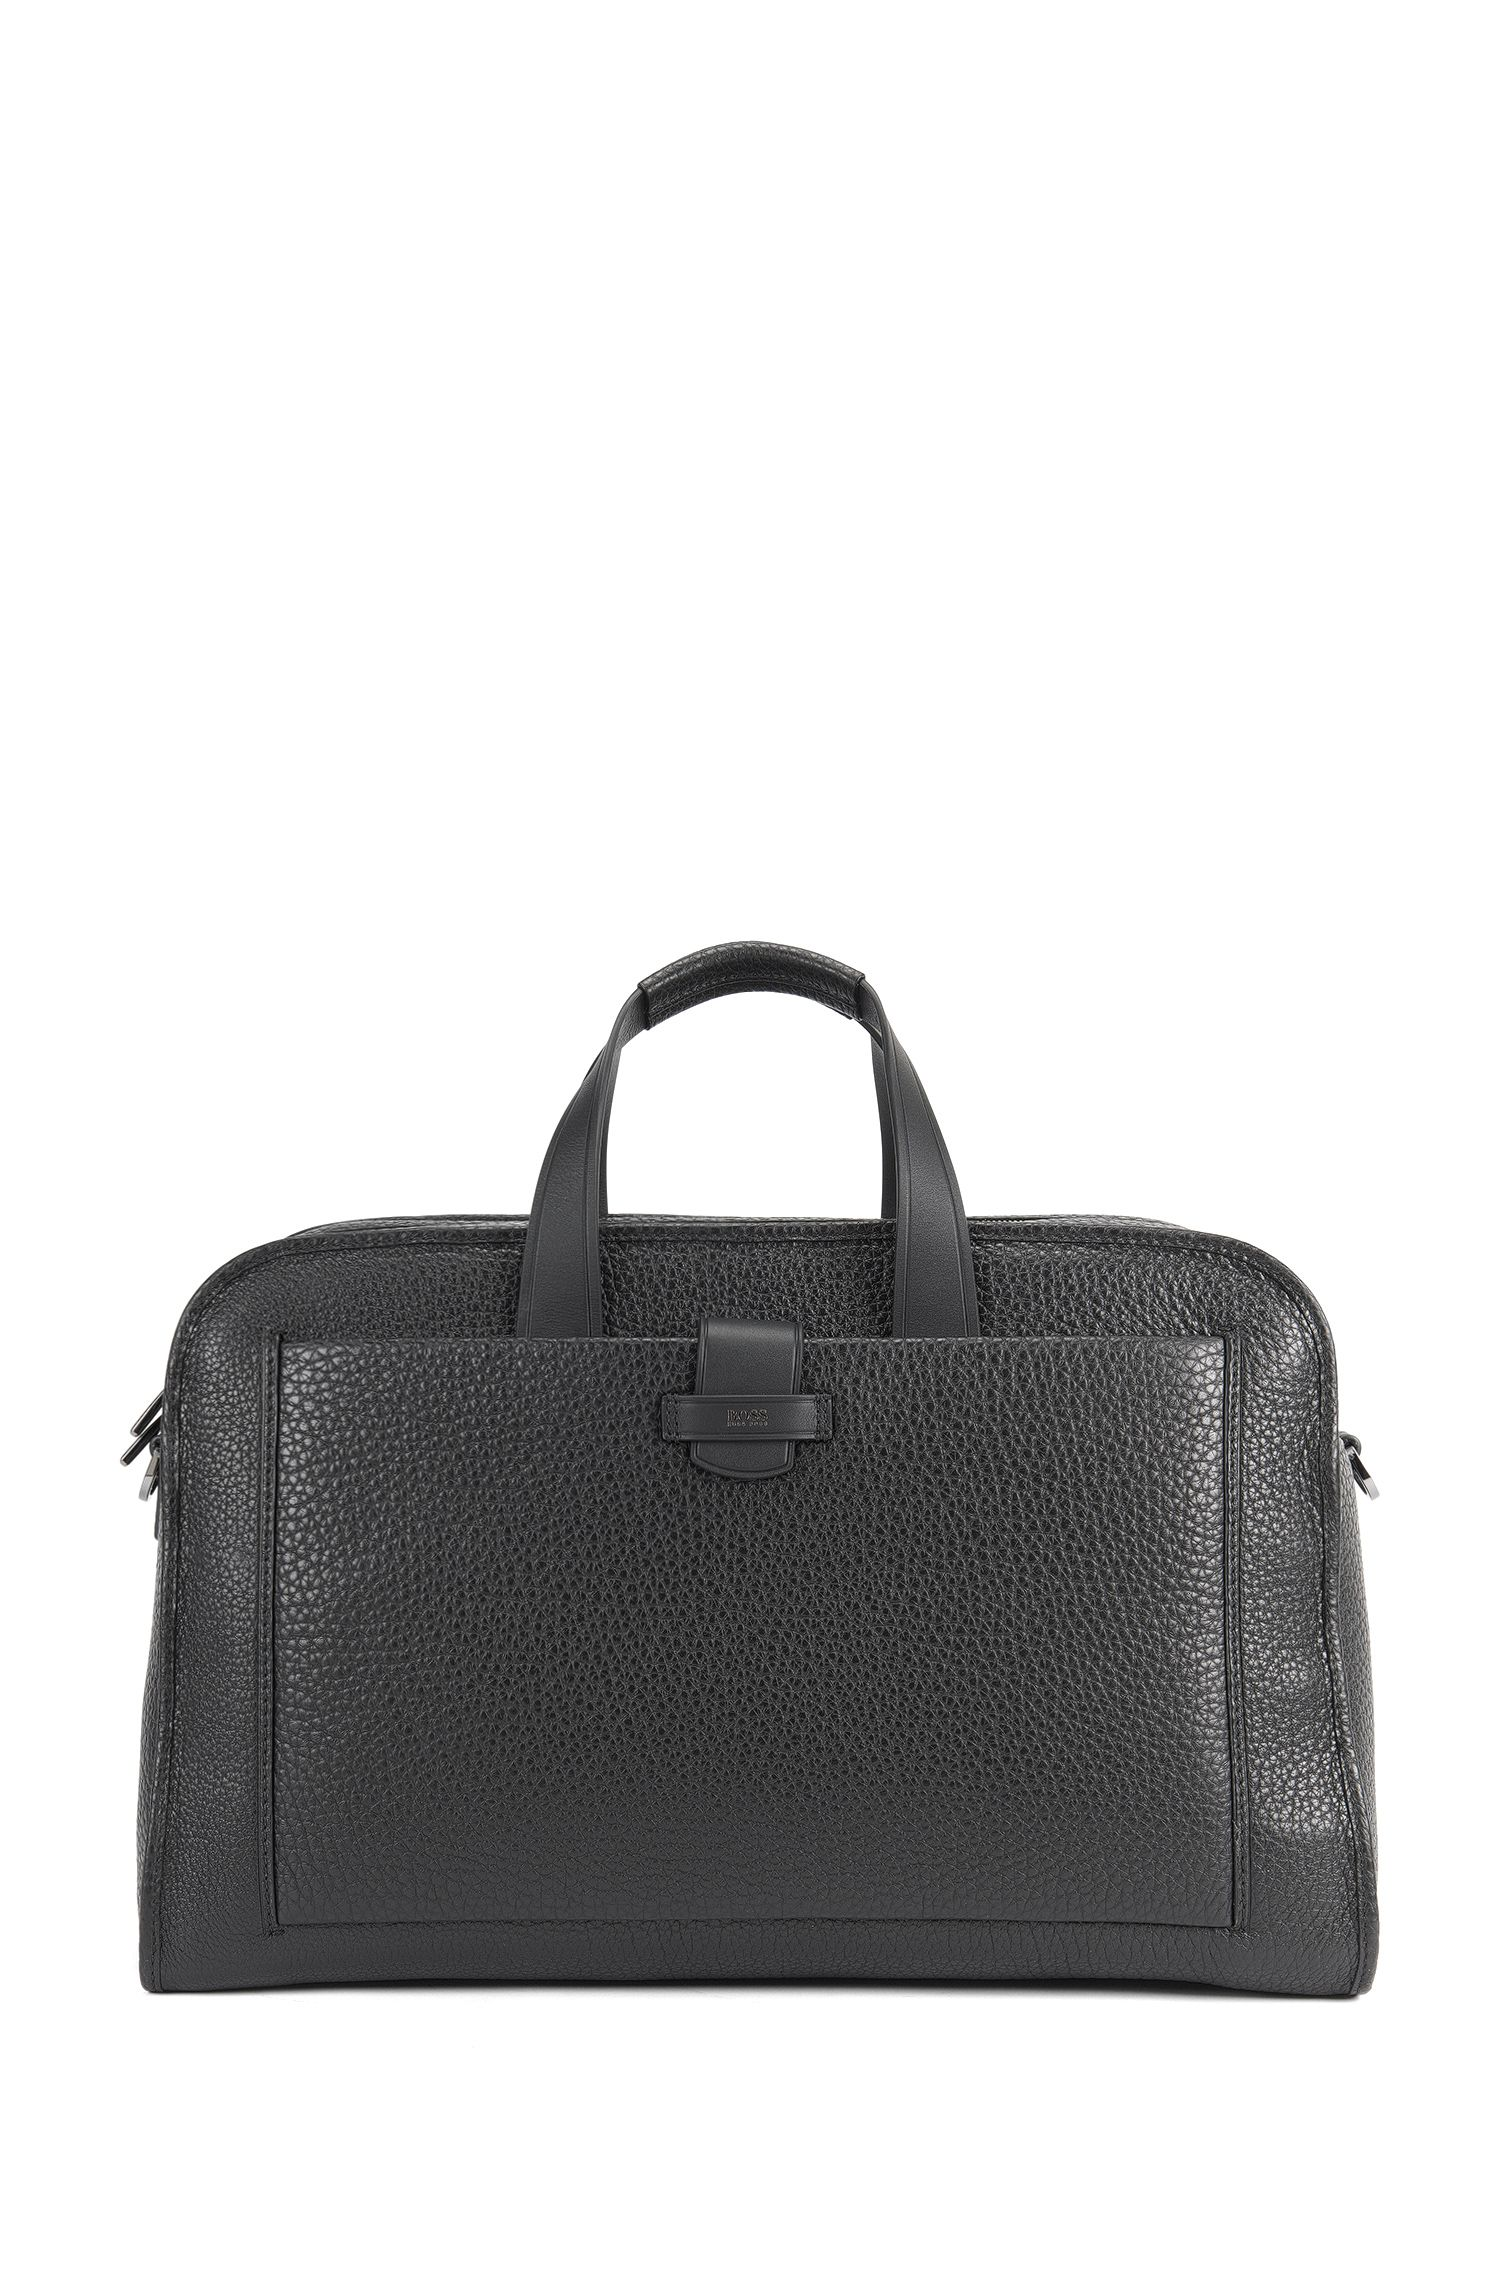 Weekend bag in grained leather